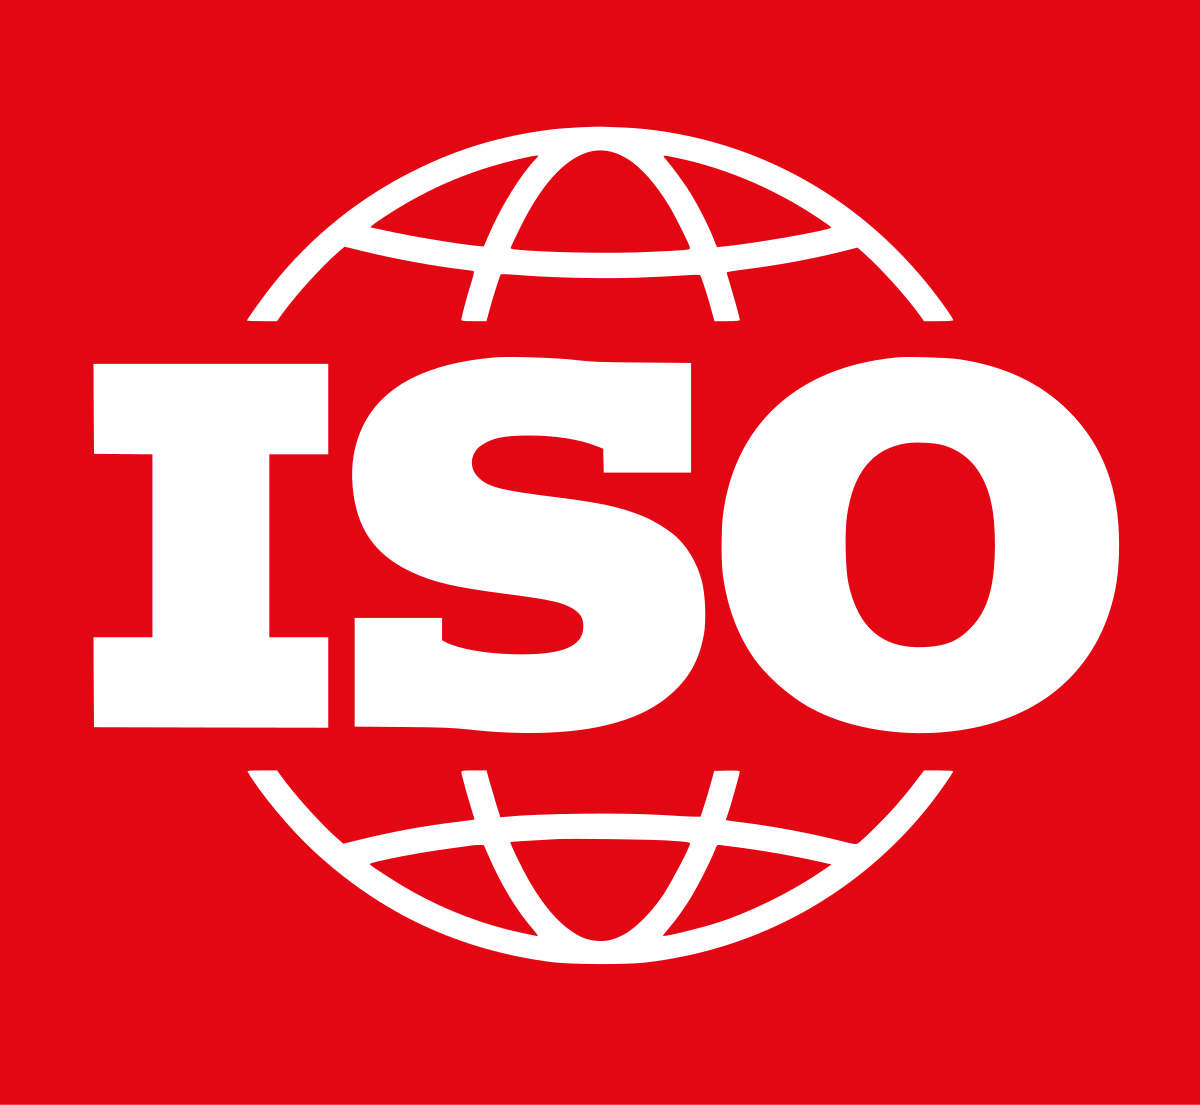 ISO Certification and Its Benefits - 4 Type of Company Incorporation Certificate in Indonesia